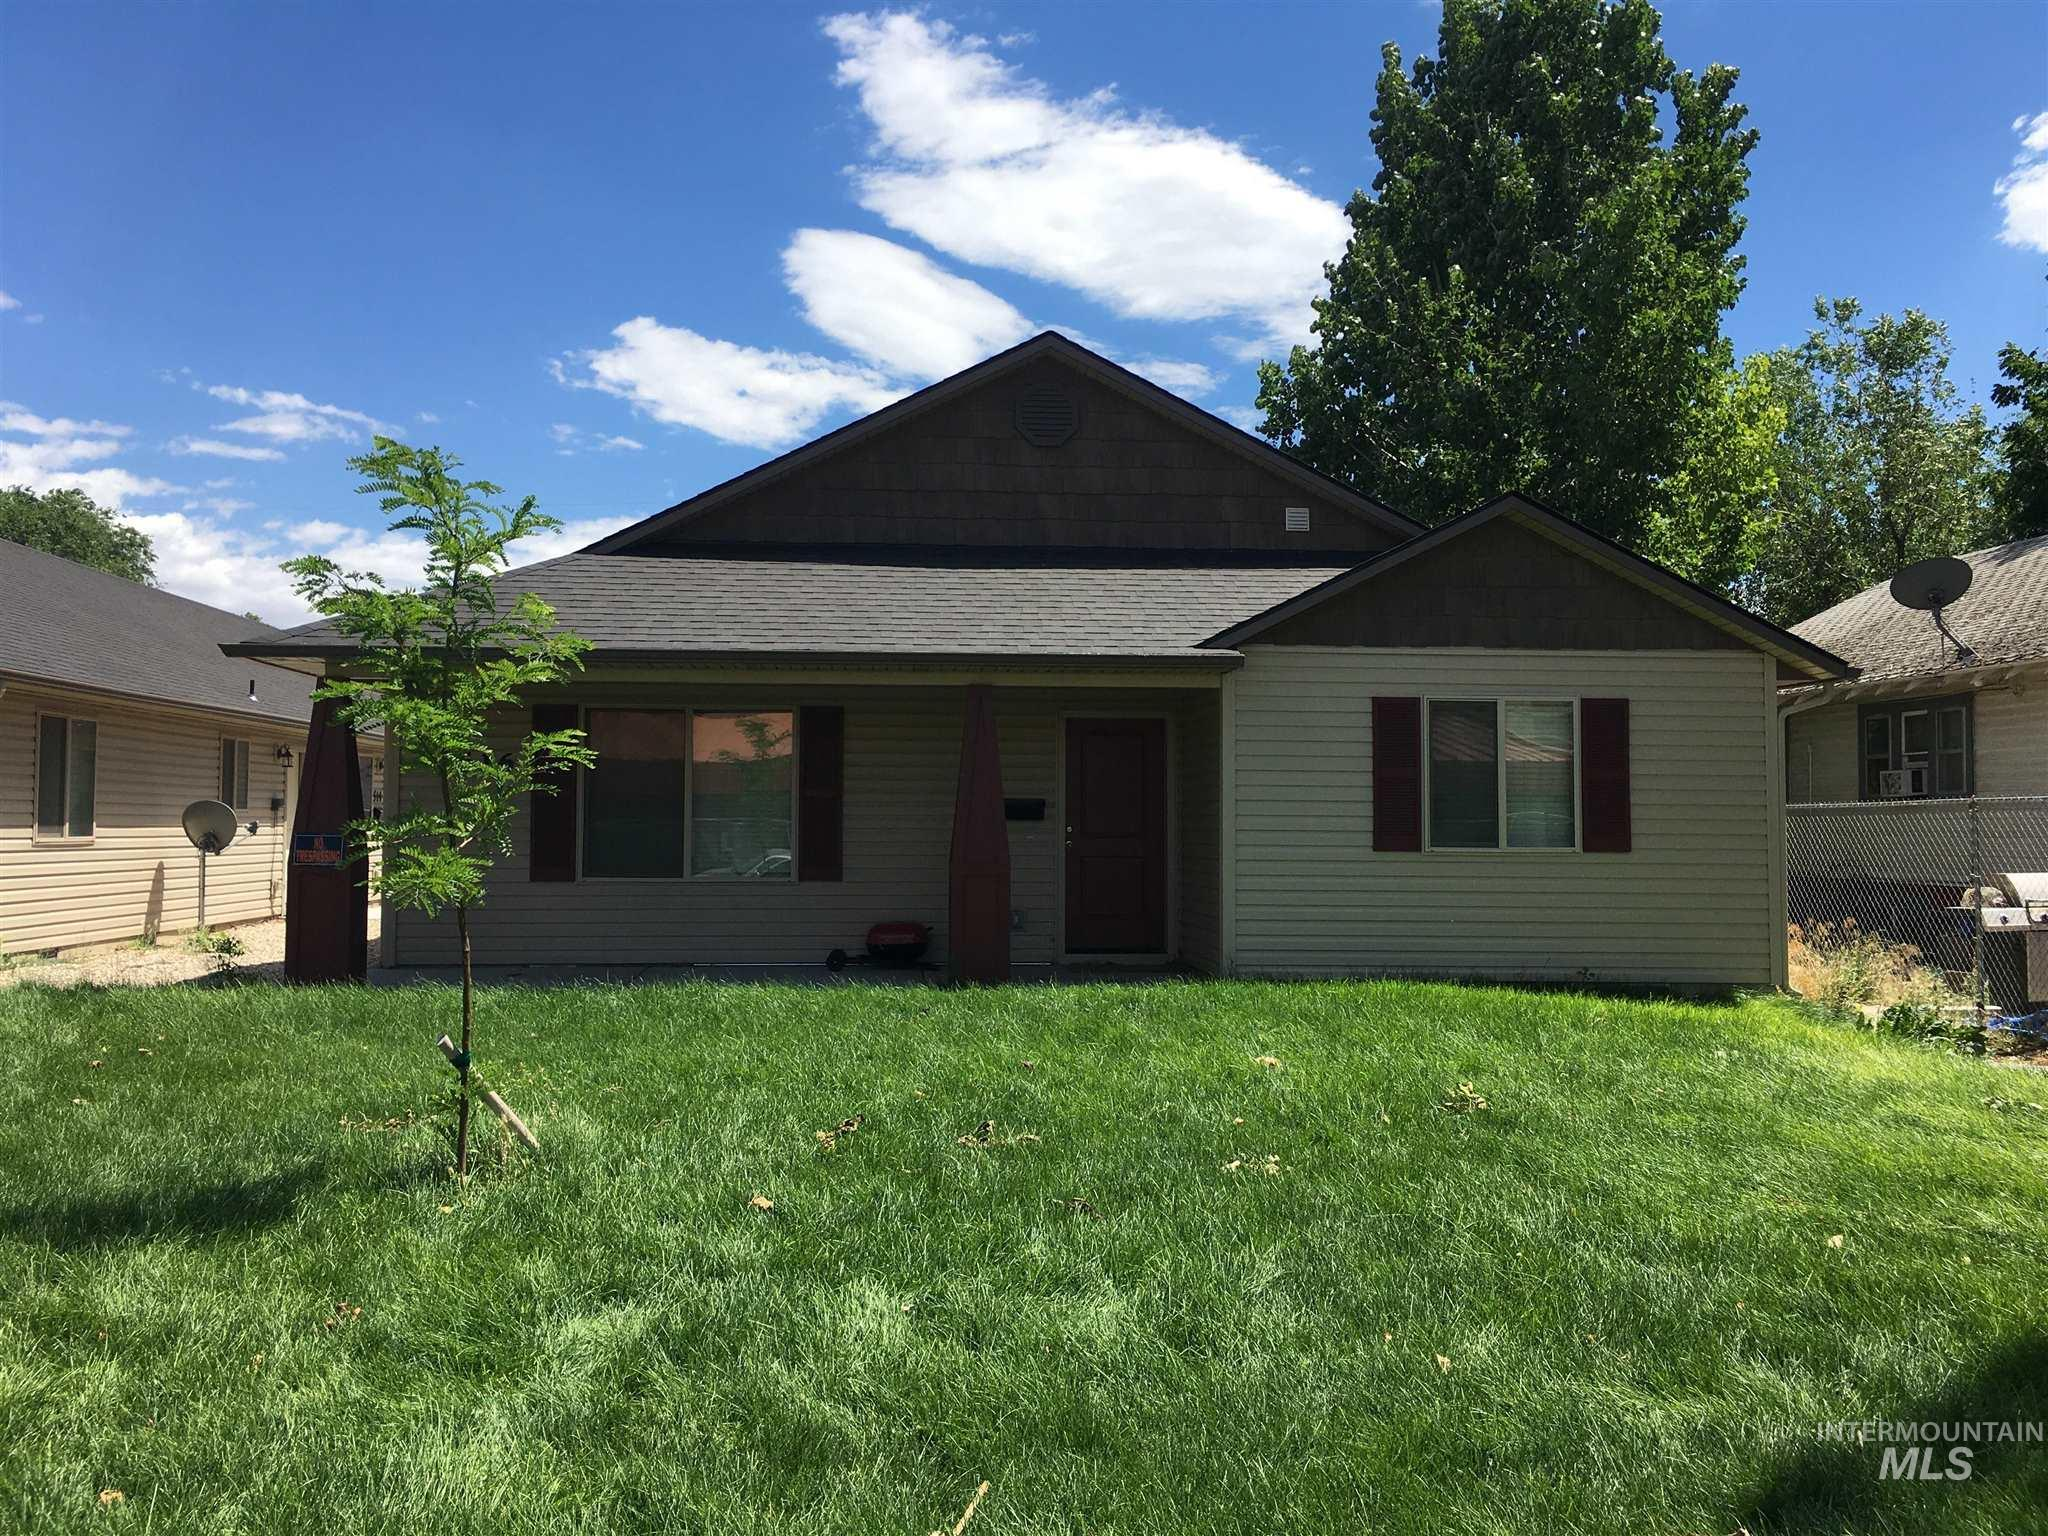 Photo of 516-518 15th Ave S Nampa ID 83651